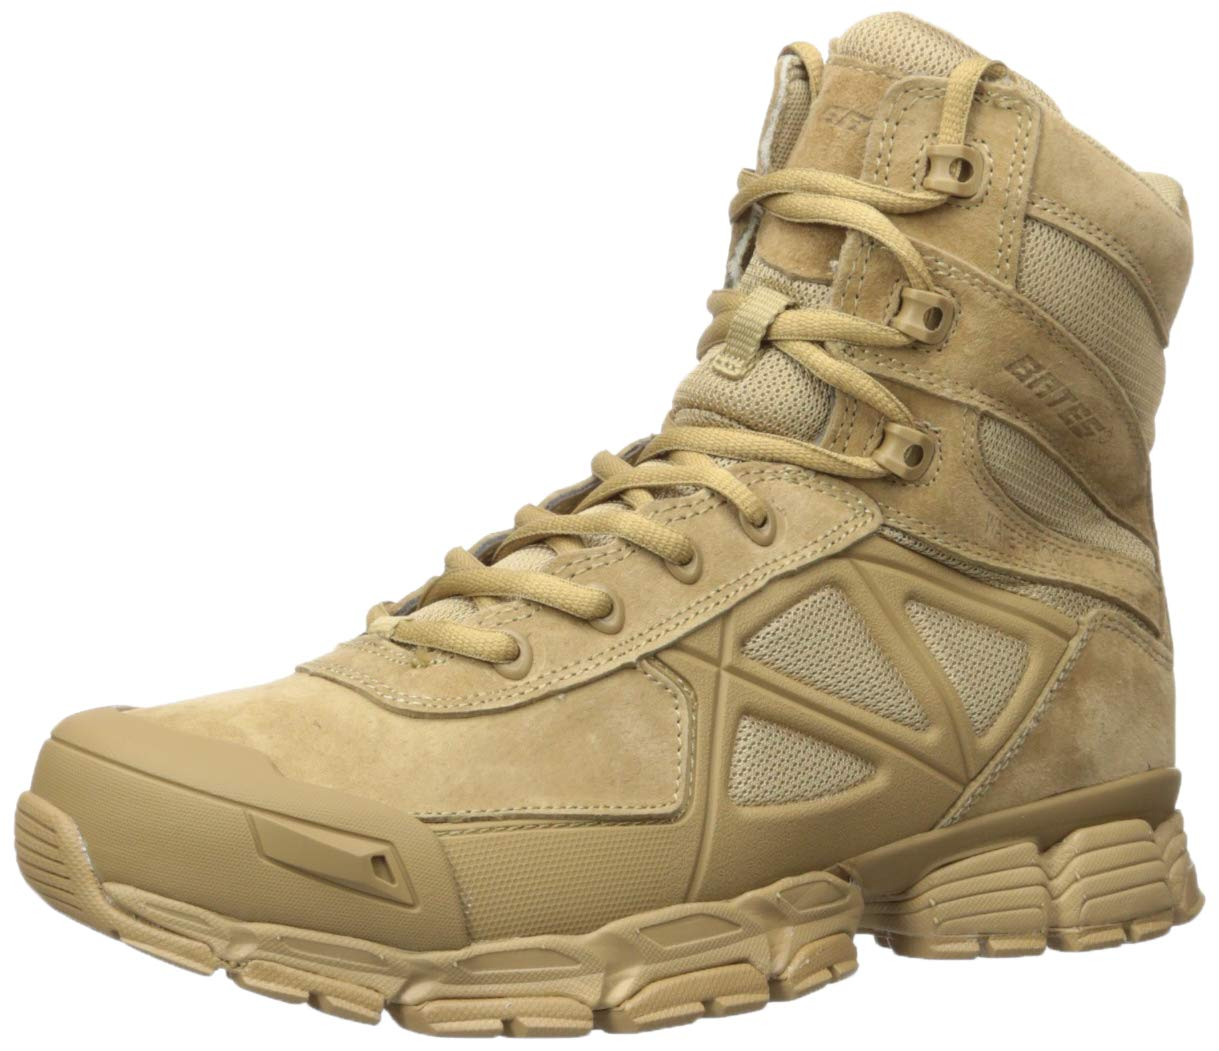 Bates Men's Velocitor Waterproof Fire and Safety Boot, Olive Mohave, 11 Extra Wide US by Bates